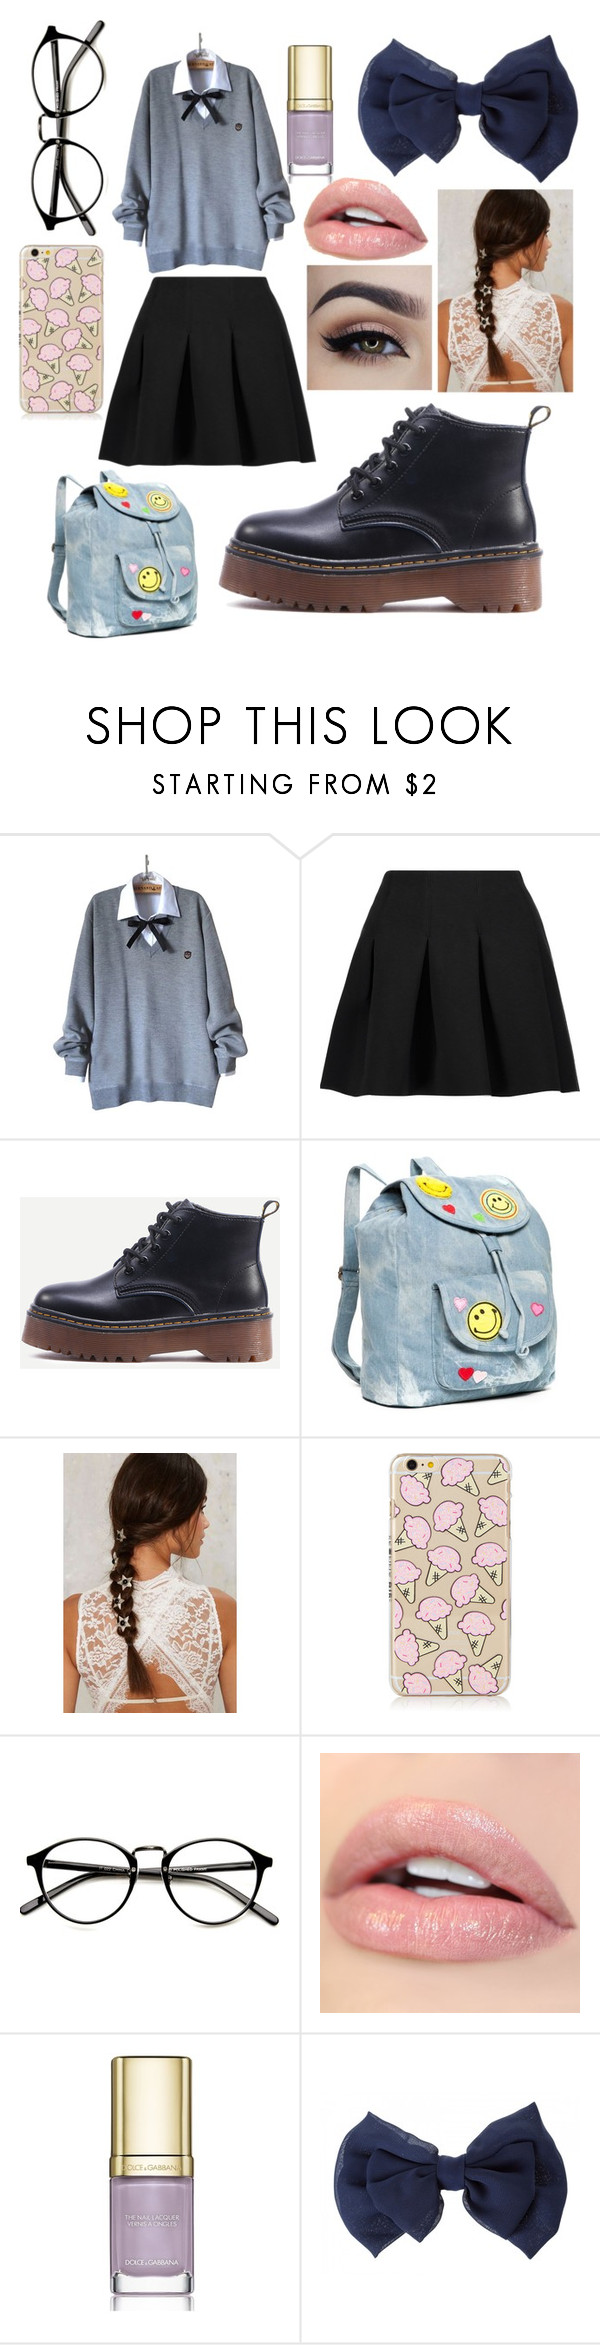 """Cute"" by emjaycat ❤ liked on Polyvore featuring T By Alexander Wang, Red Camel and Dolce&Gabbana"